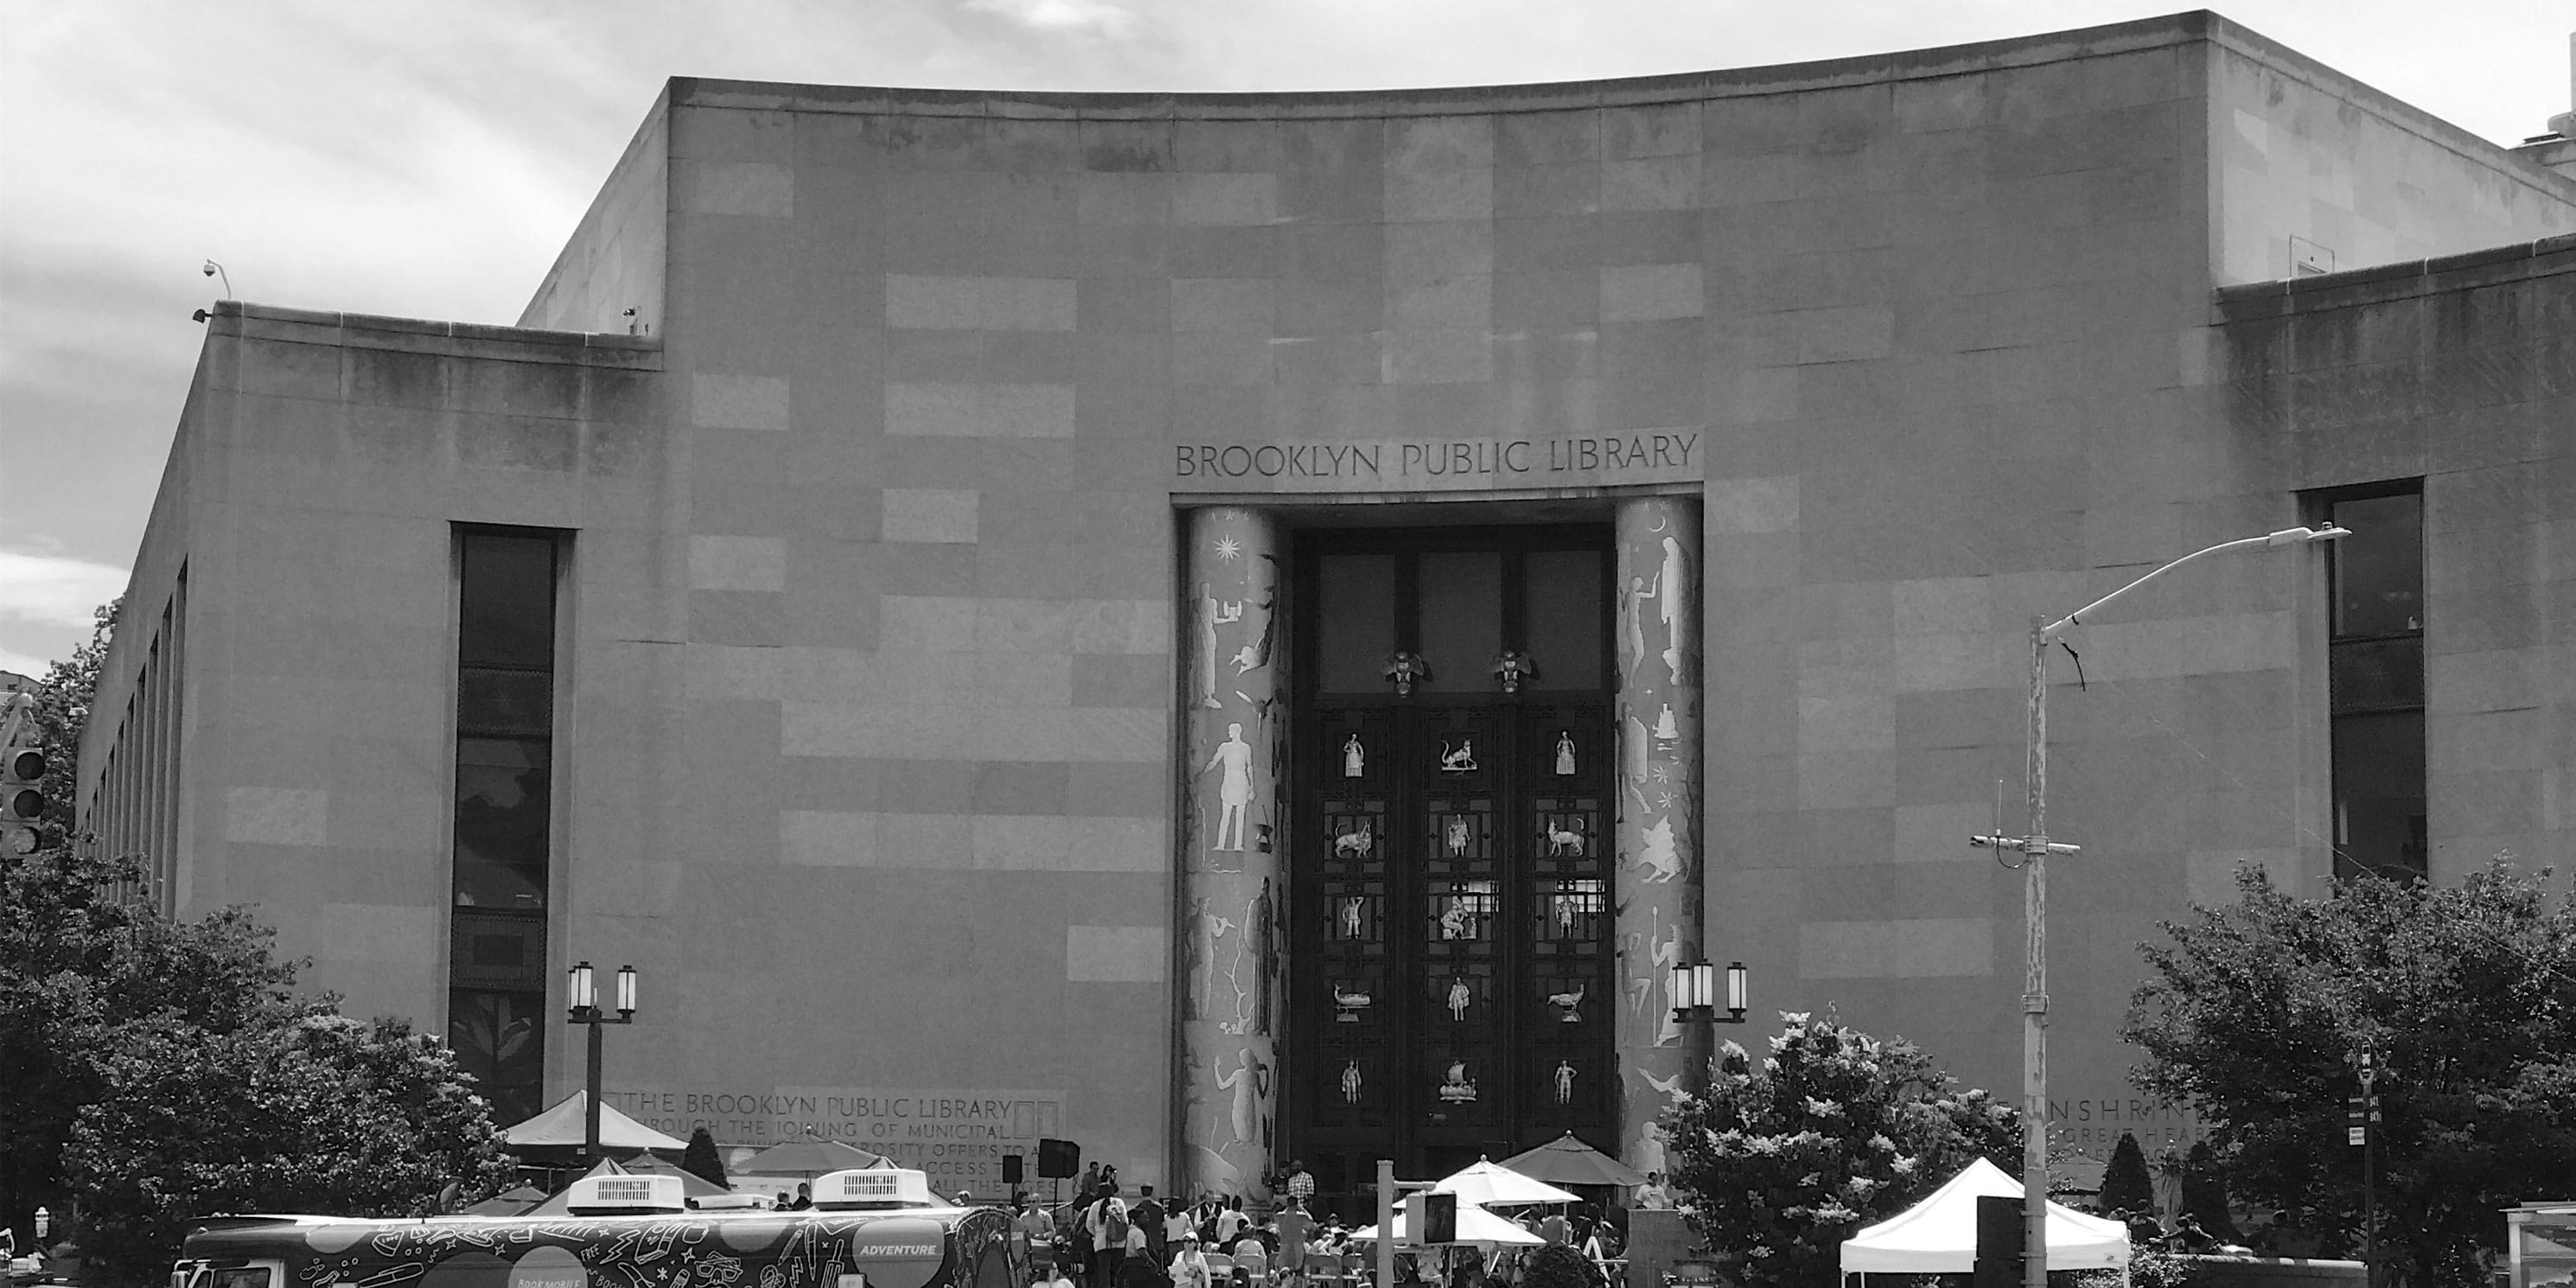 exterior of the Brooklyn Public Library